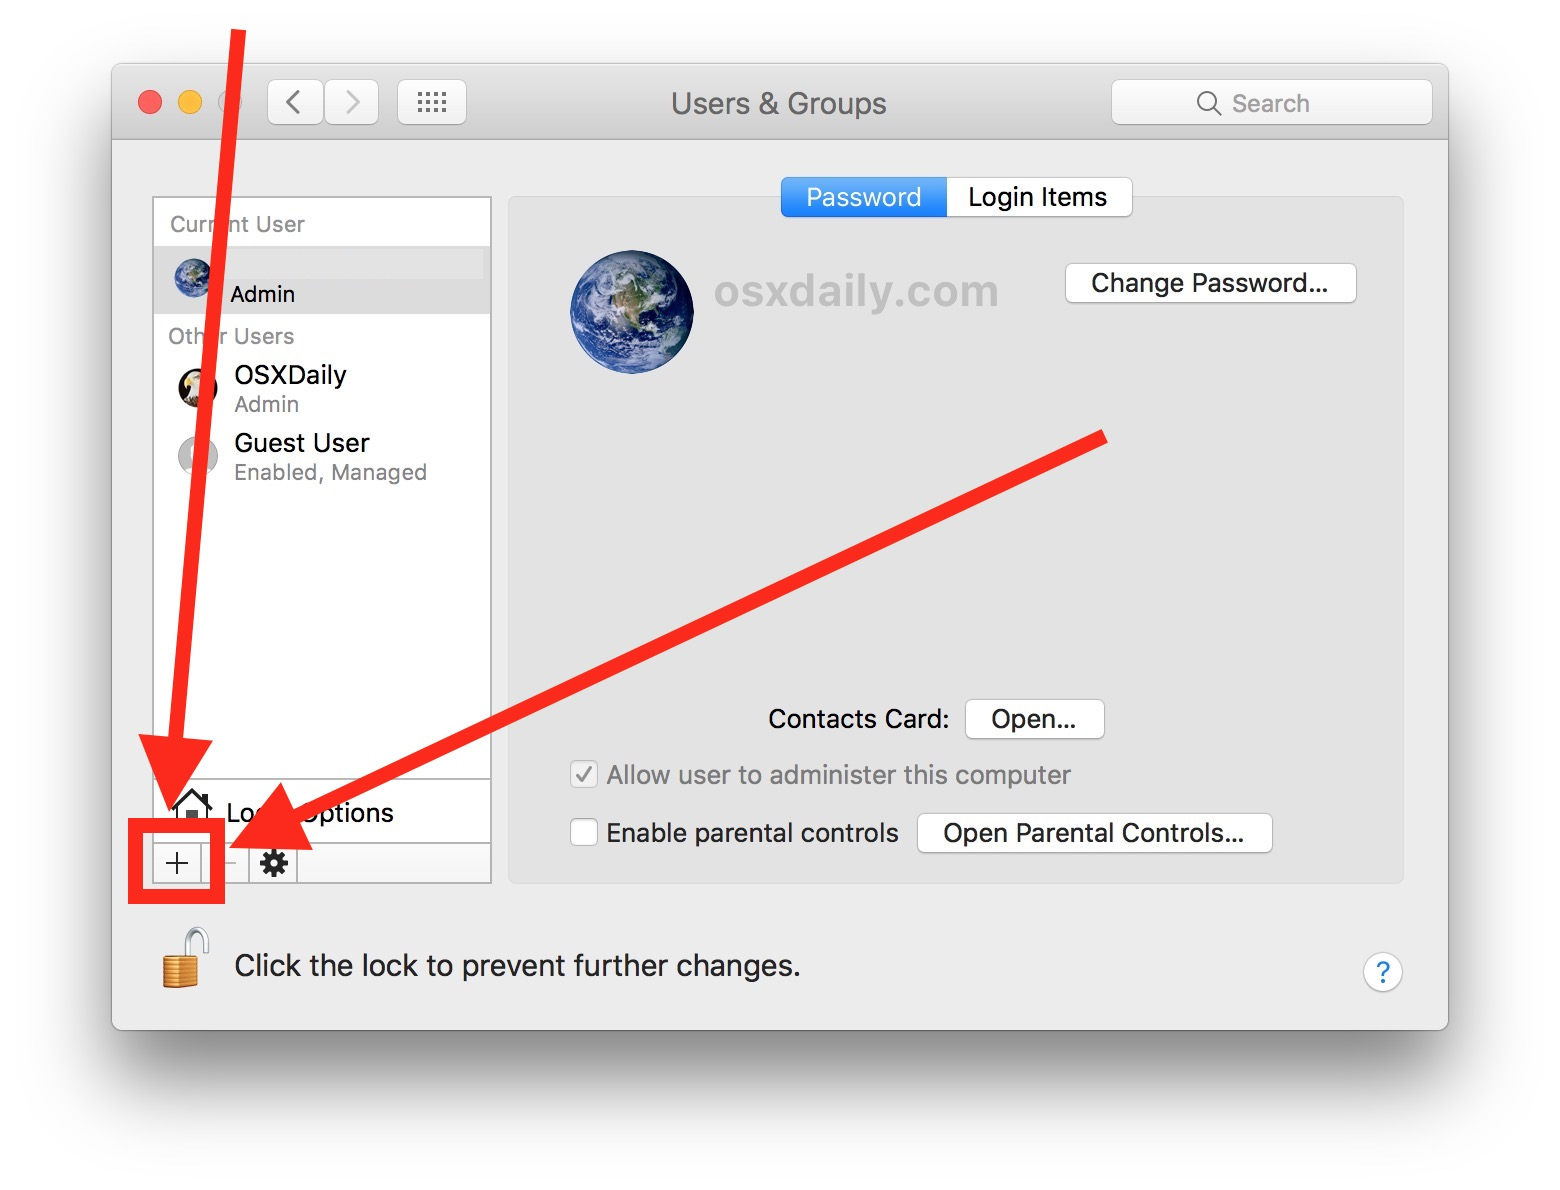 Creating a new admin user account on the Mac